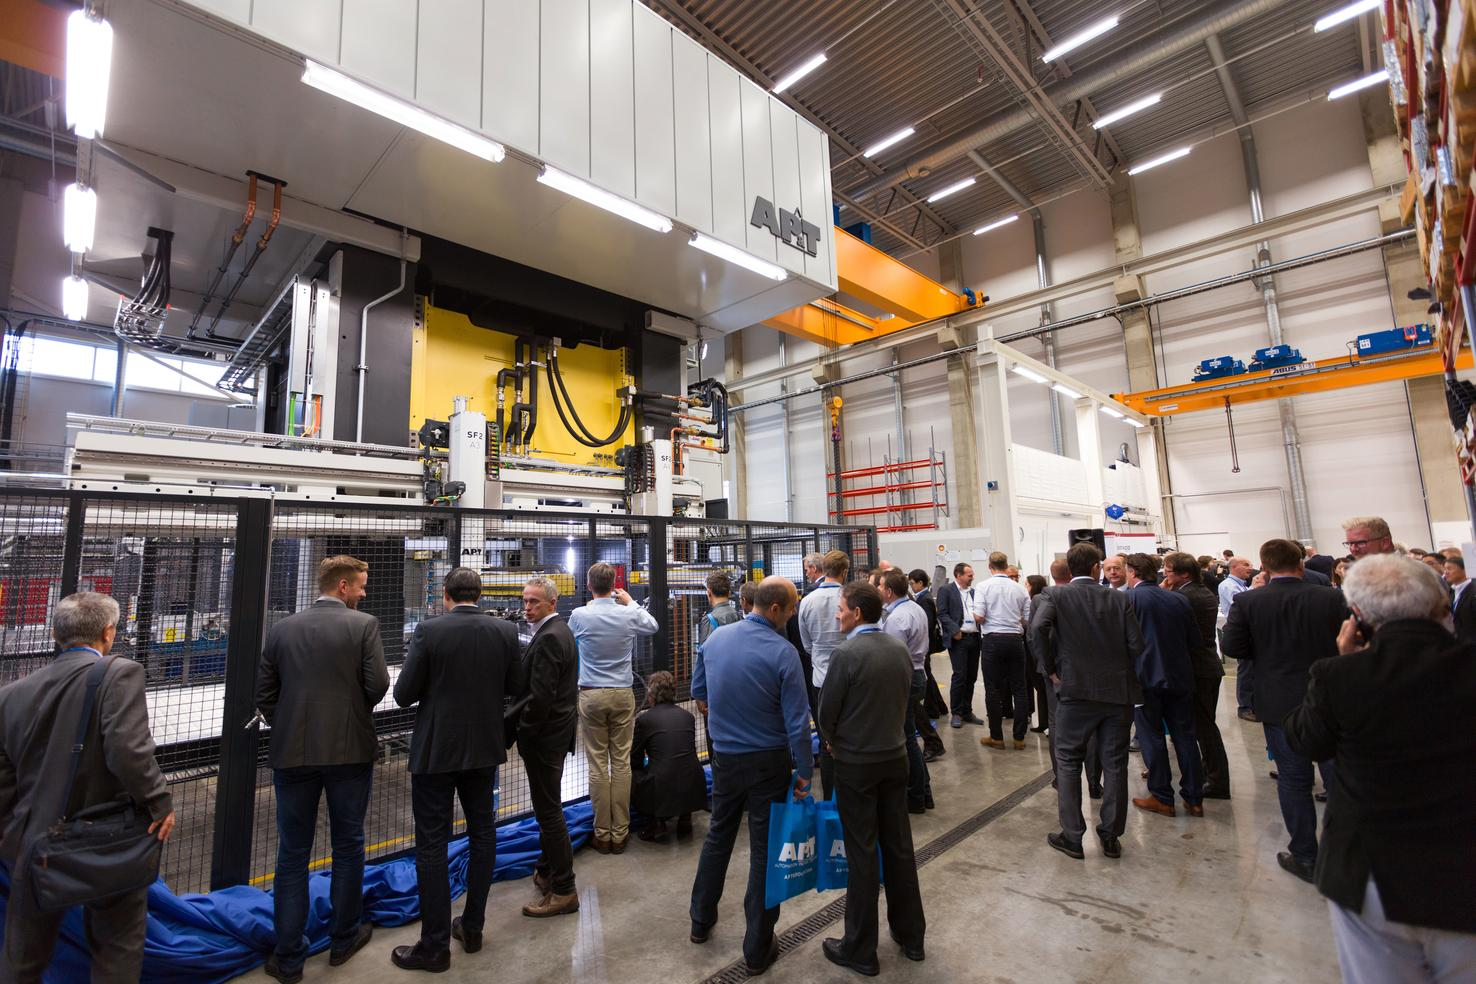 The new servo hydraulic press was presented to customers and other stakeholders for the first time at an event in Ulricehamn, Sweden on October 4 and 5.